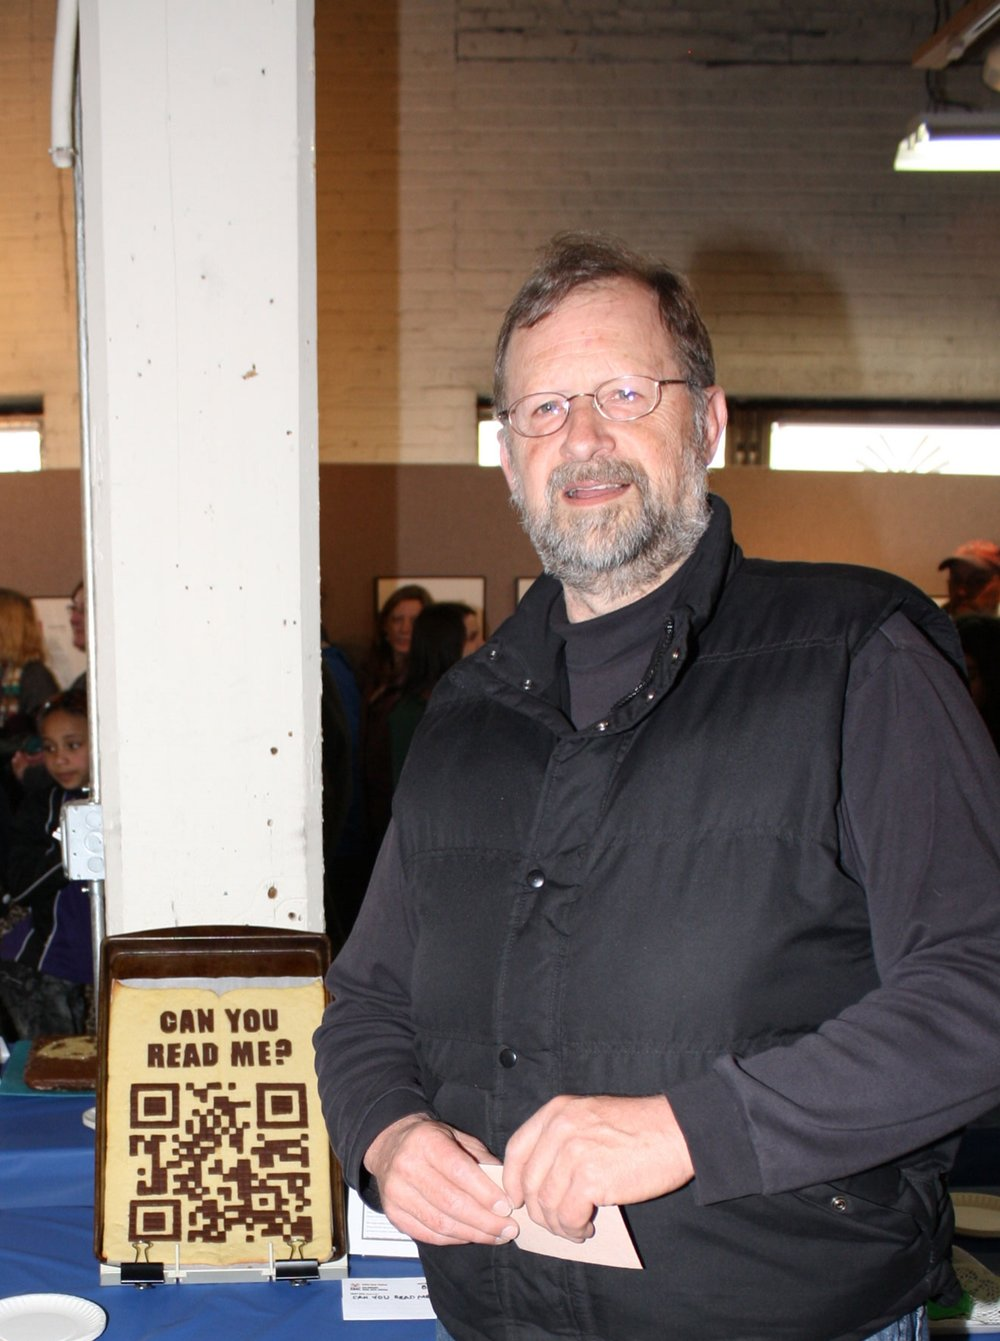 """Keith Jones, winner of Judge's Choice, with his book """"Can You Read Me,"""" featuring a QR code made of food that actually works!"""